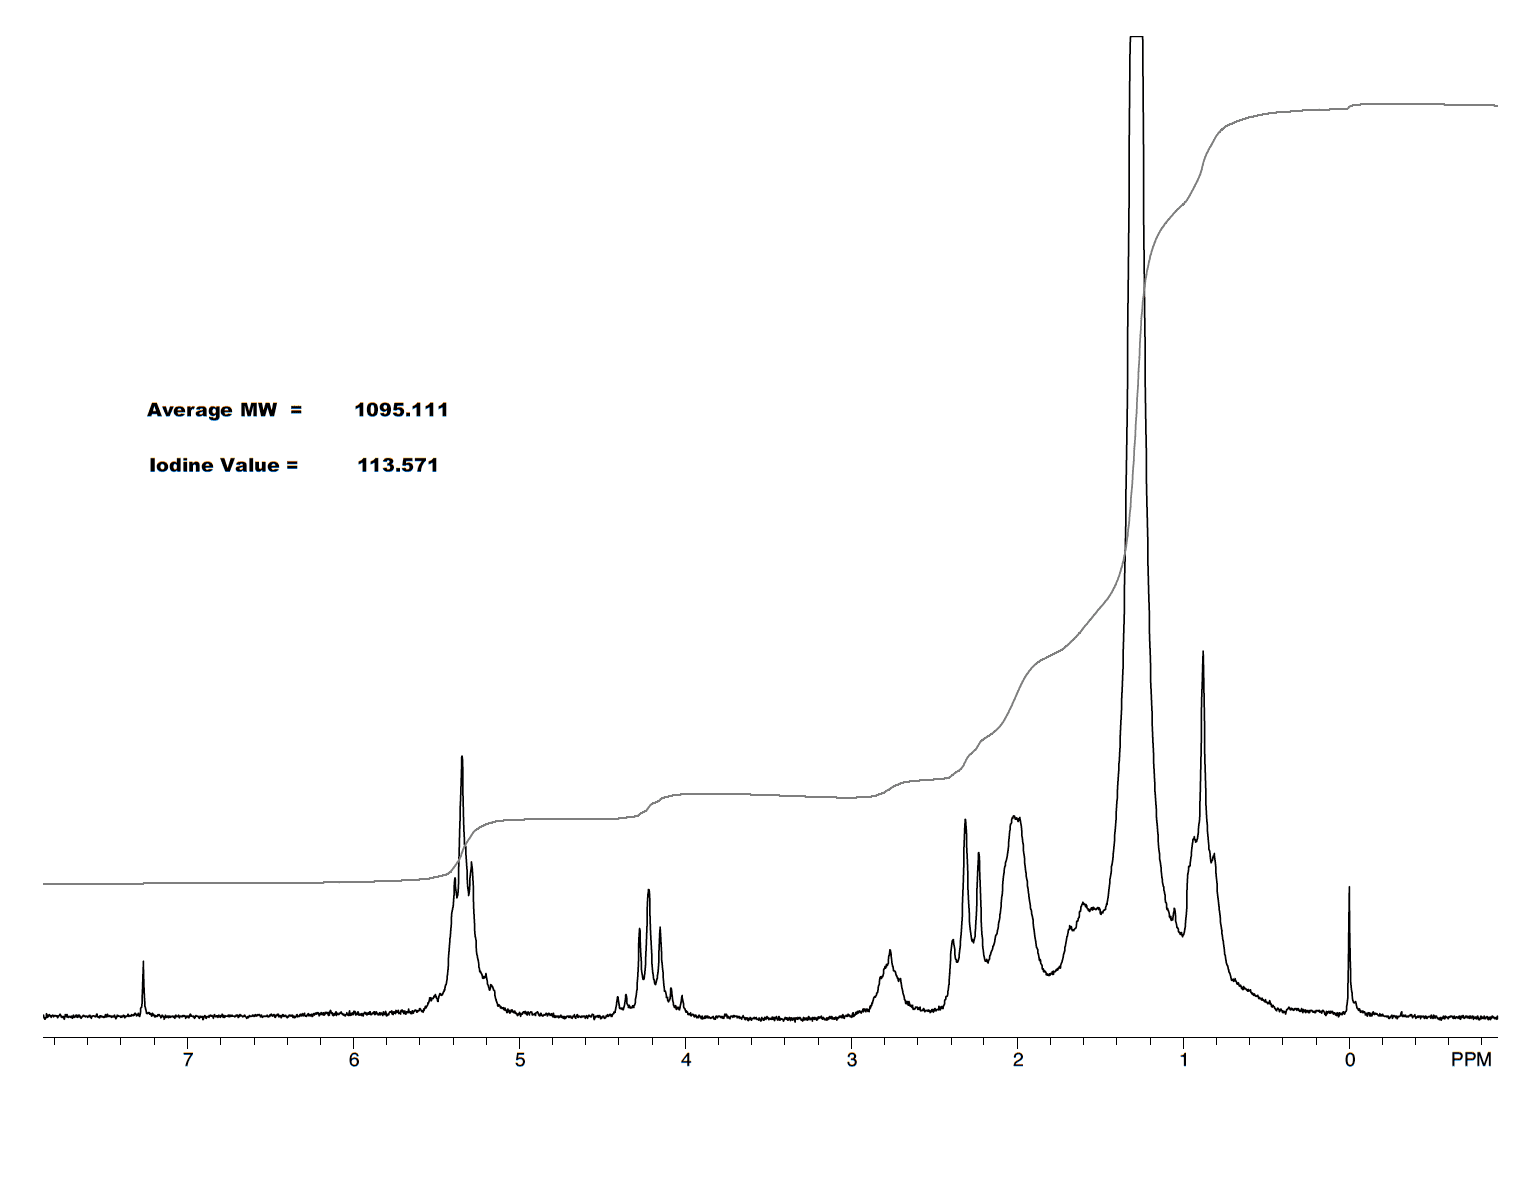 Anasazi Instruments 1H spectrum vegetable oil graph